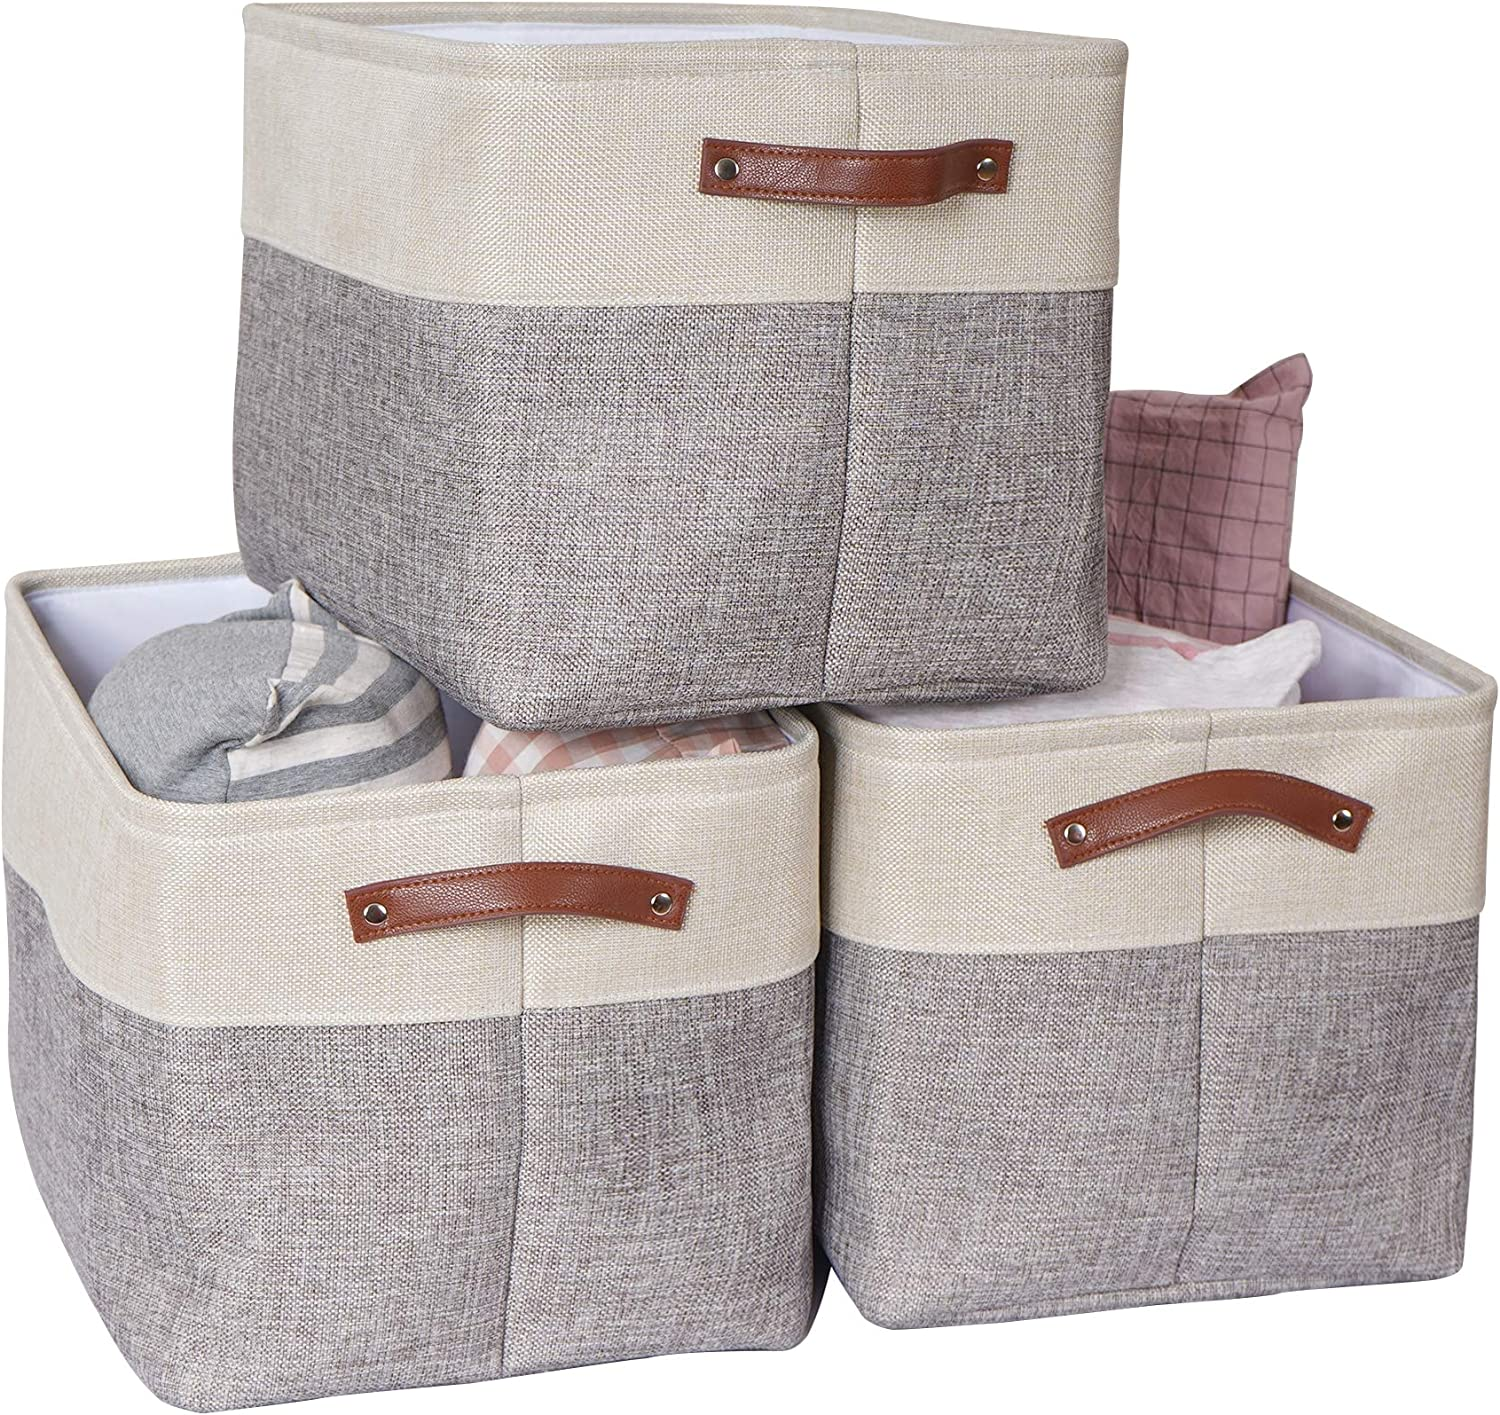 VK Living Large Foldable Storage Bin | Collapsible Sturdy Cationic Fabric Storage Basket Cube W/Handles for Organizing Shelf Nursery Home Closet & Office - Grey and White 3 Pack 15 x 11 x 9.6